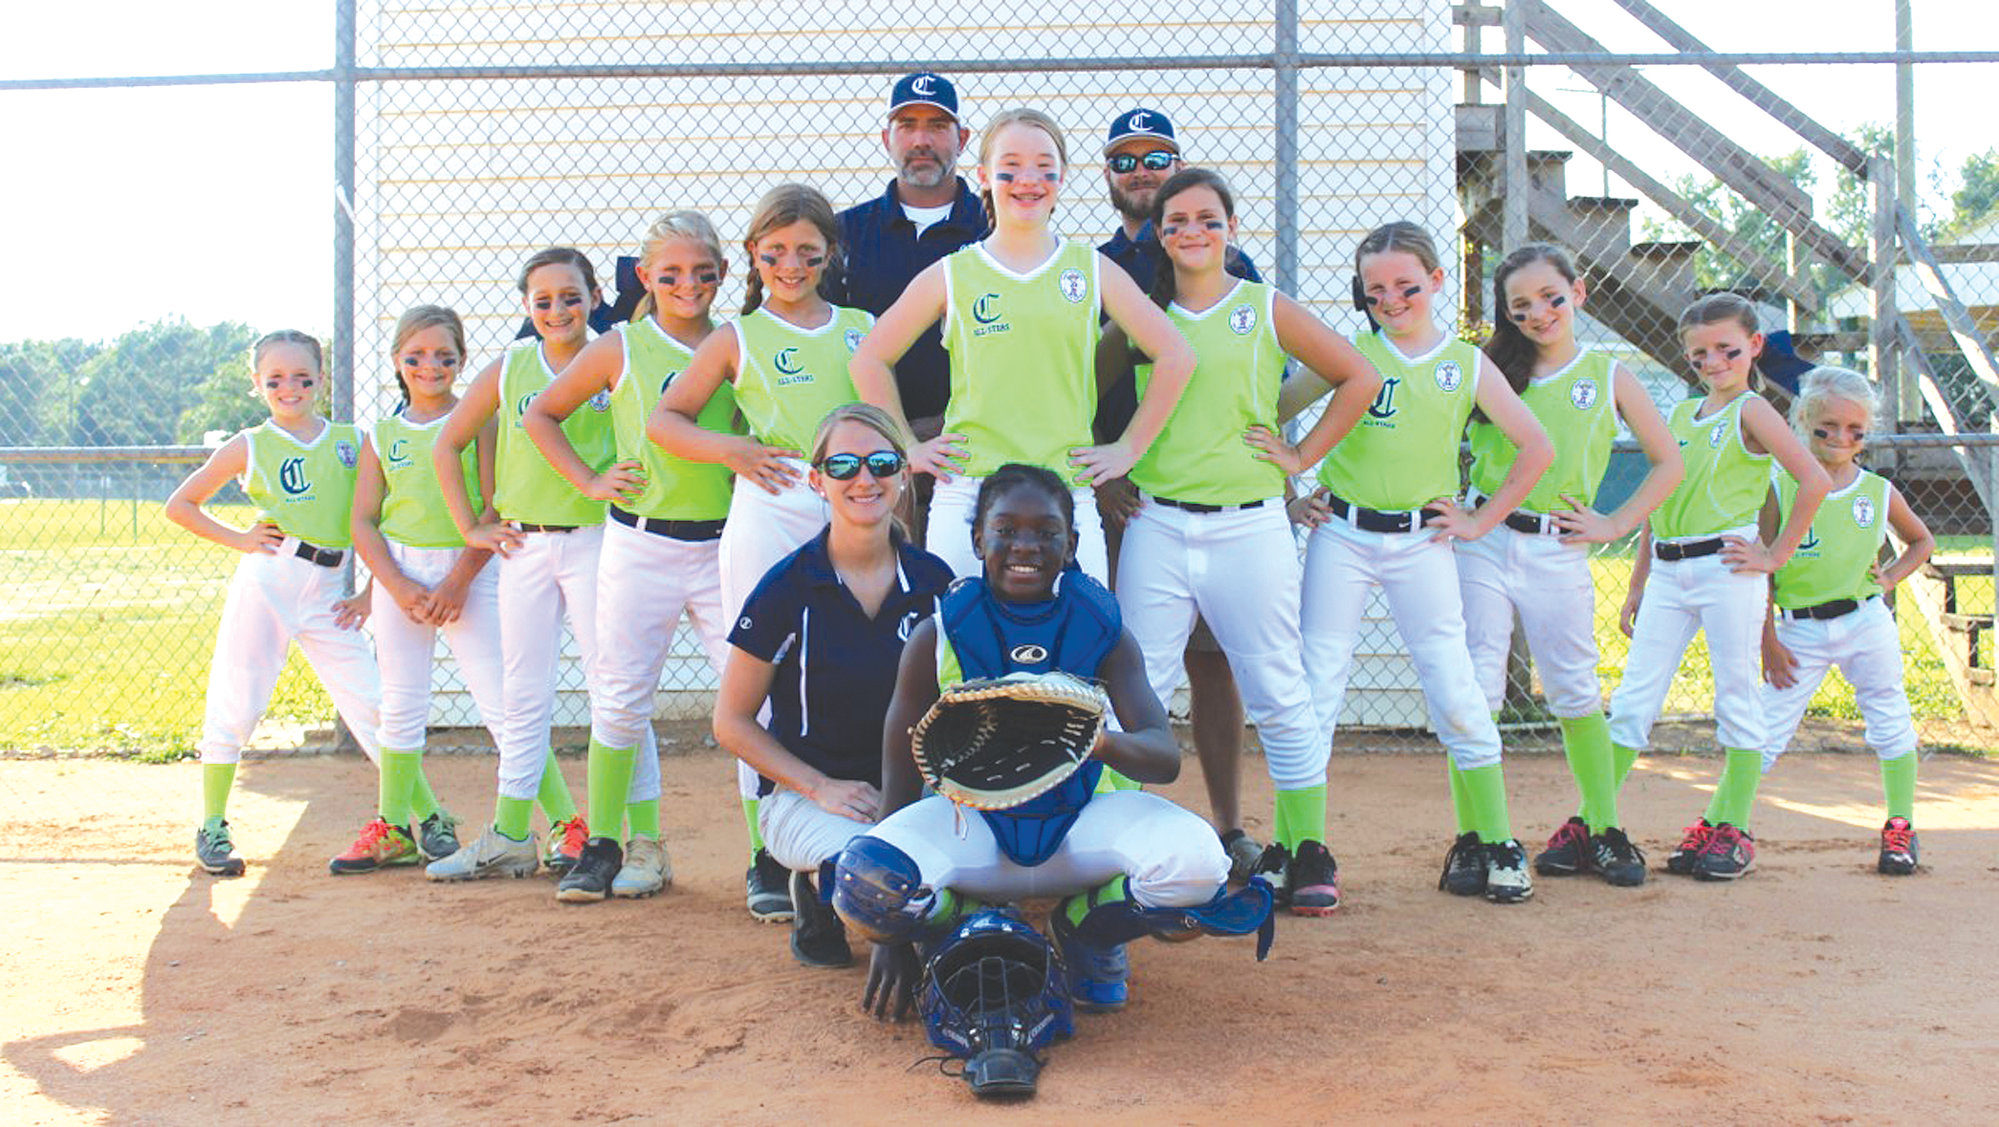 Clarendon County 10u softball team wins first-ever district